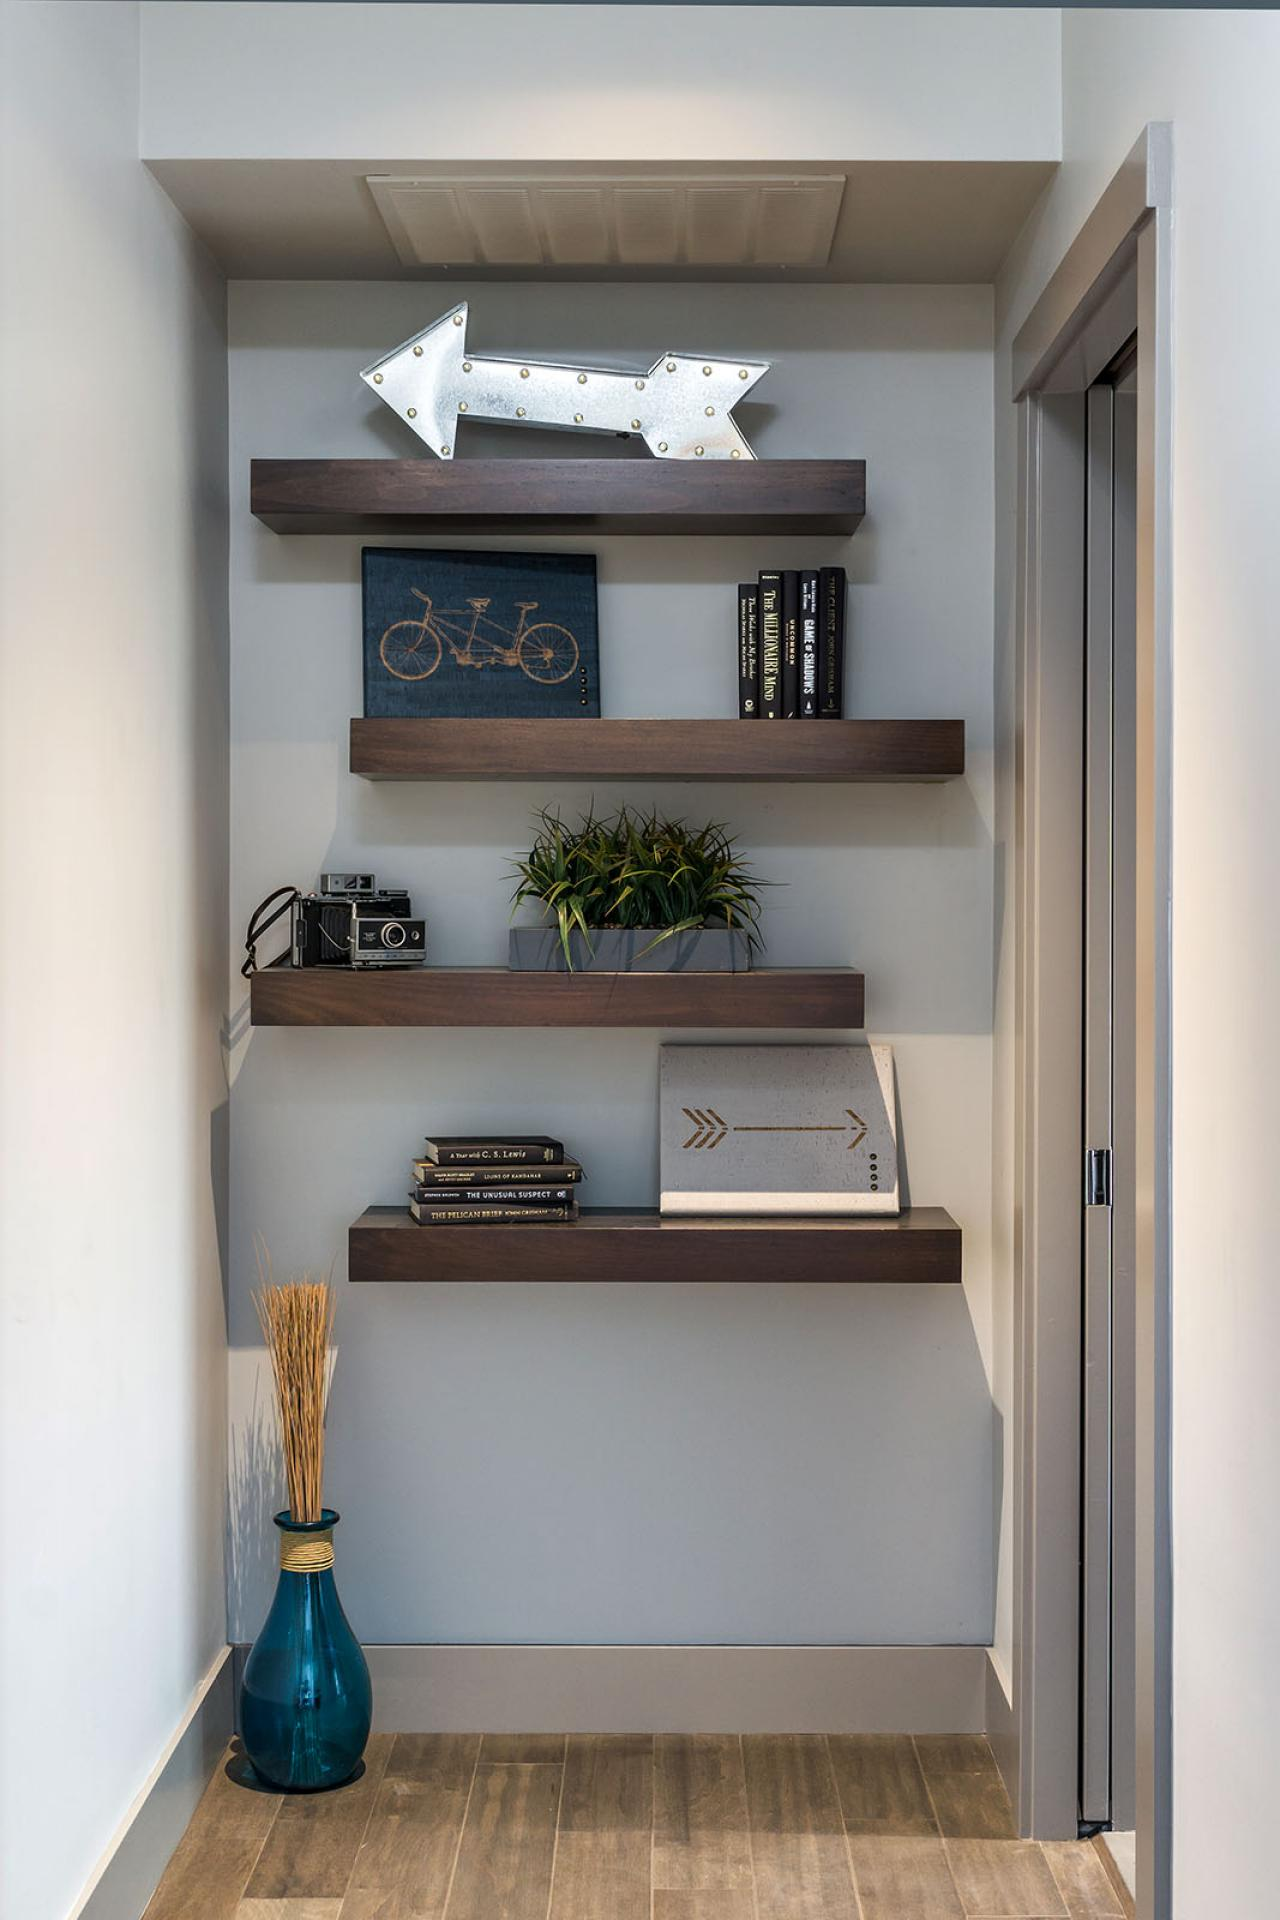 ways decorate with floating shelves decorating for hallway decorative contemporary desk and cherry wood fireplace mantel kitchen basket drawers best shredded latex pillow coat key